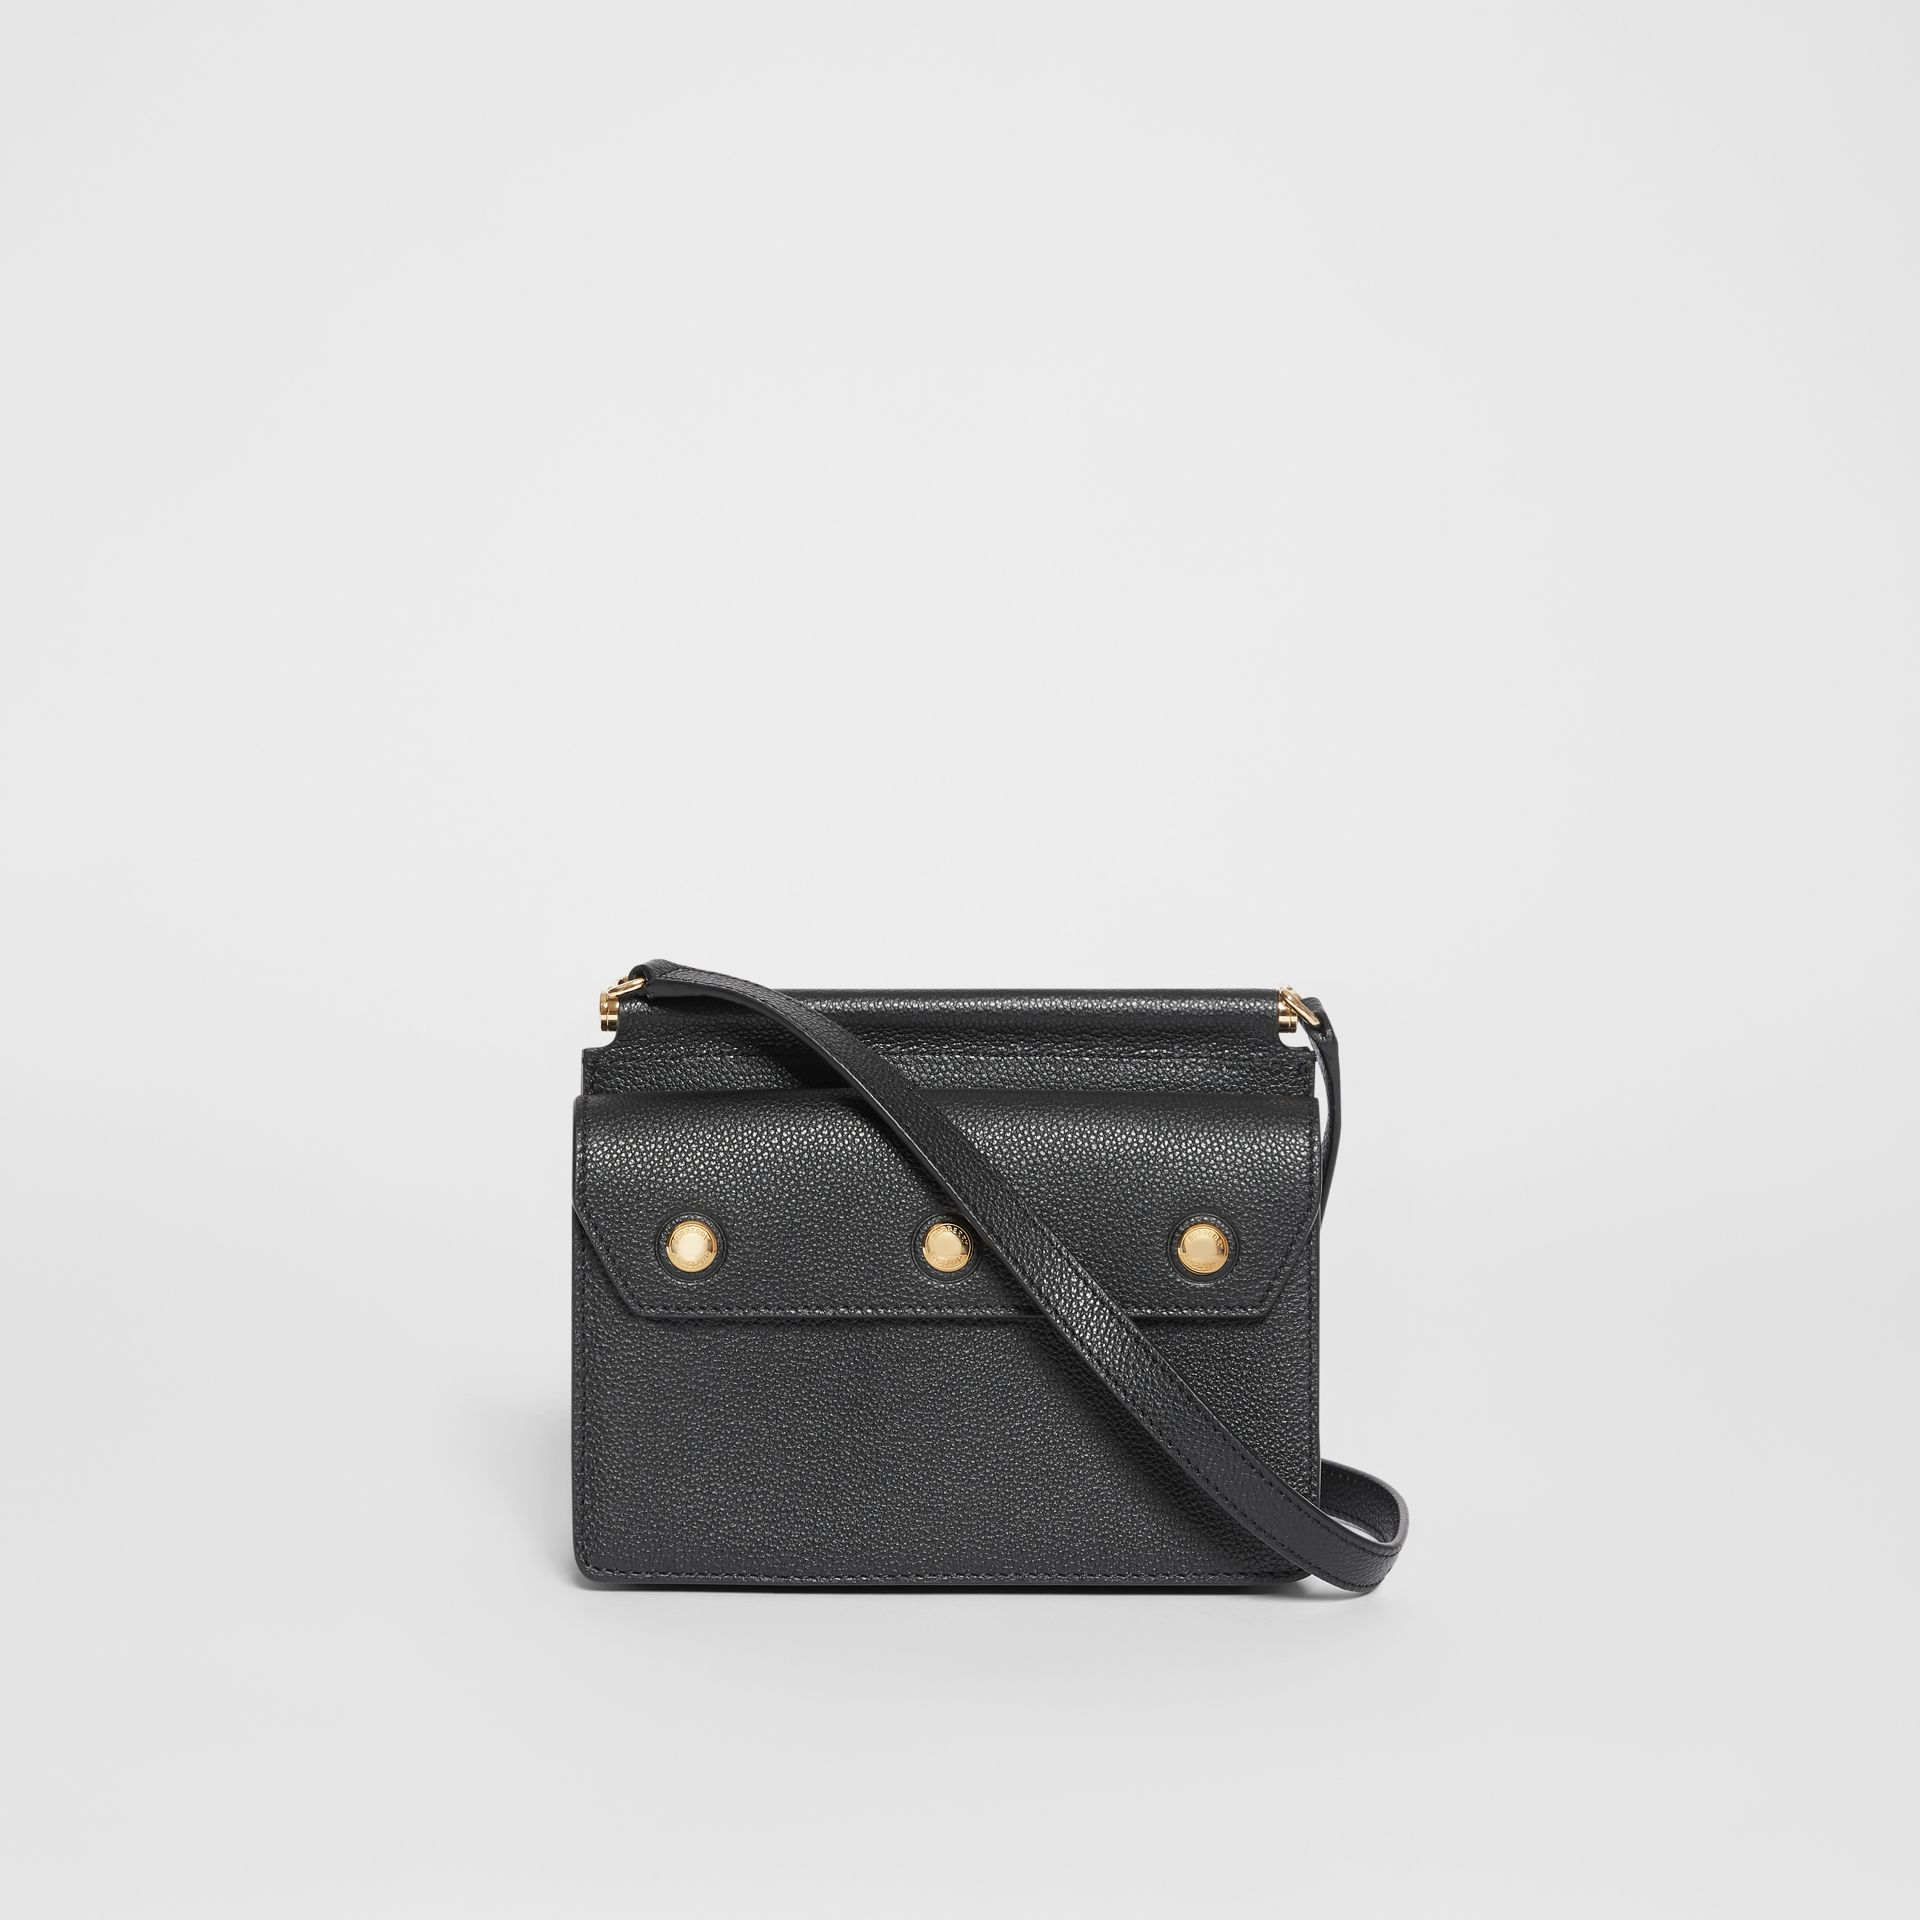 Mini Leather Title Bag with Pocket Detail in Black - Women | Burberry United States - gallery image 7